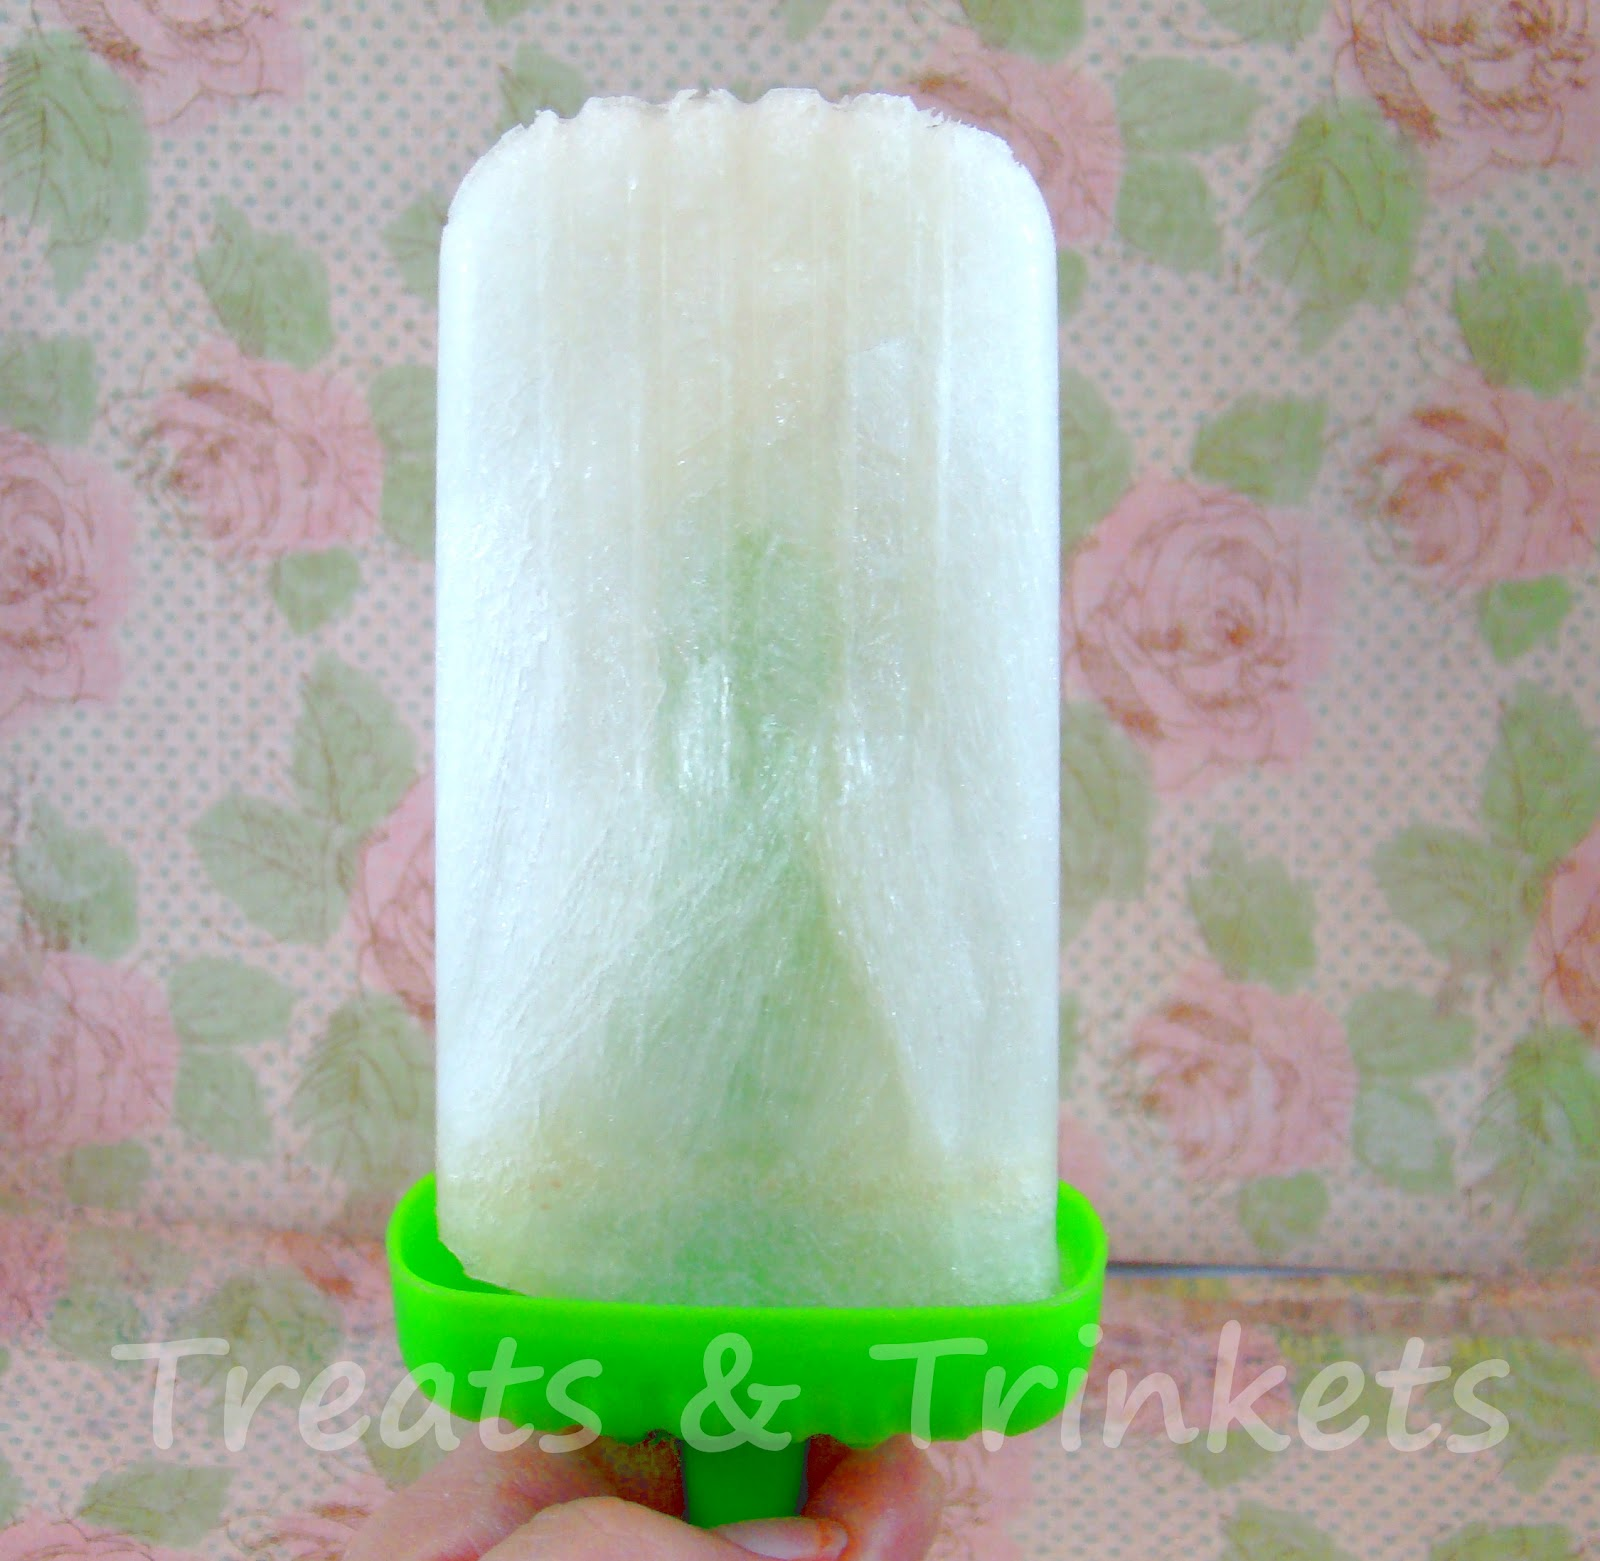 Treats & Trinkets: Cherry Limeade and Lemon Lime Ice Pops